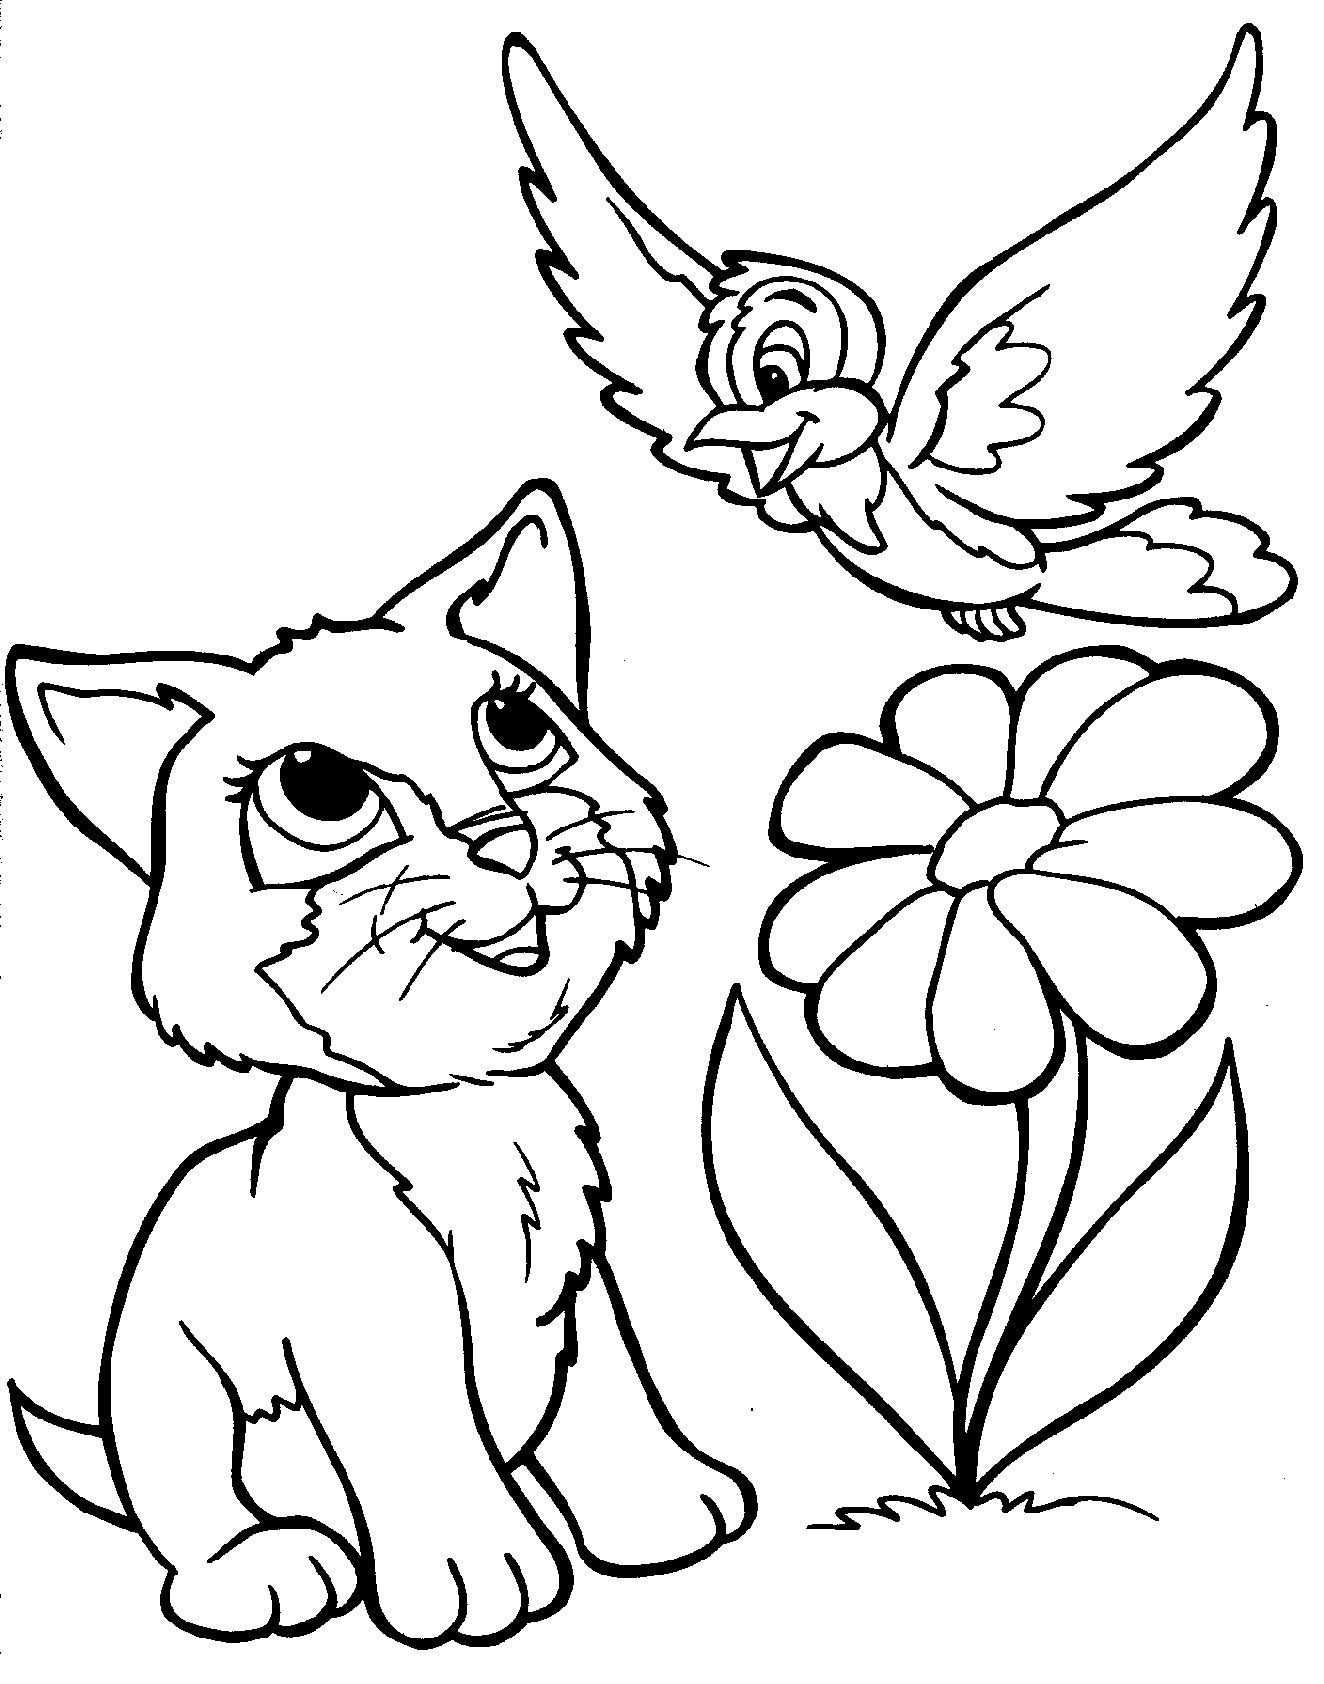 Cute Cat Coloring Pages Coloring Pages Printable Cat Coloring